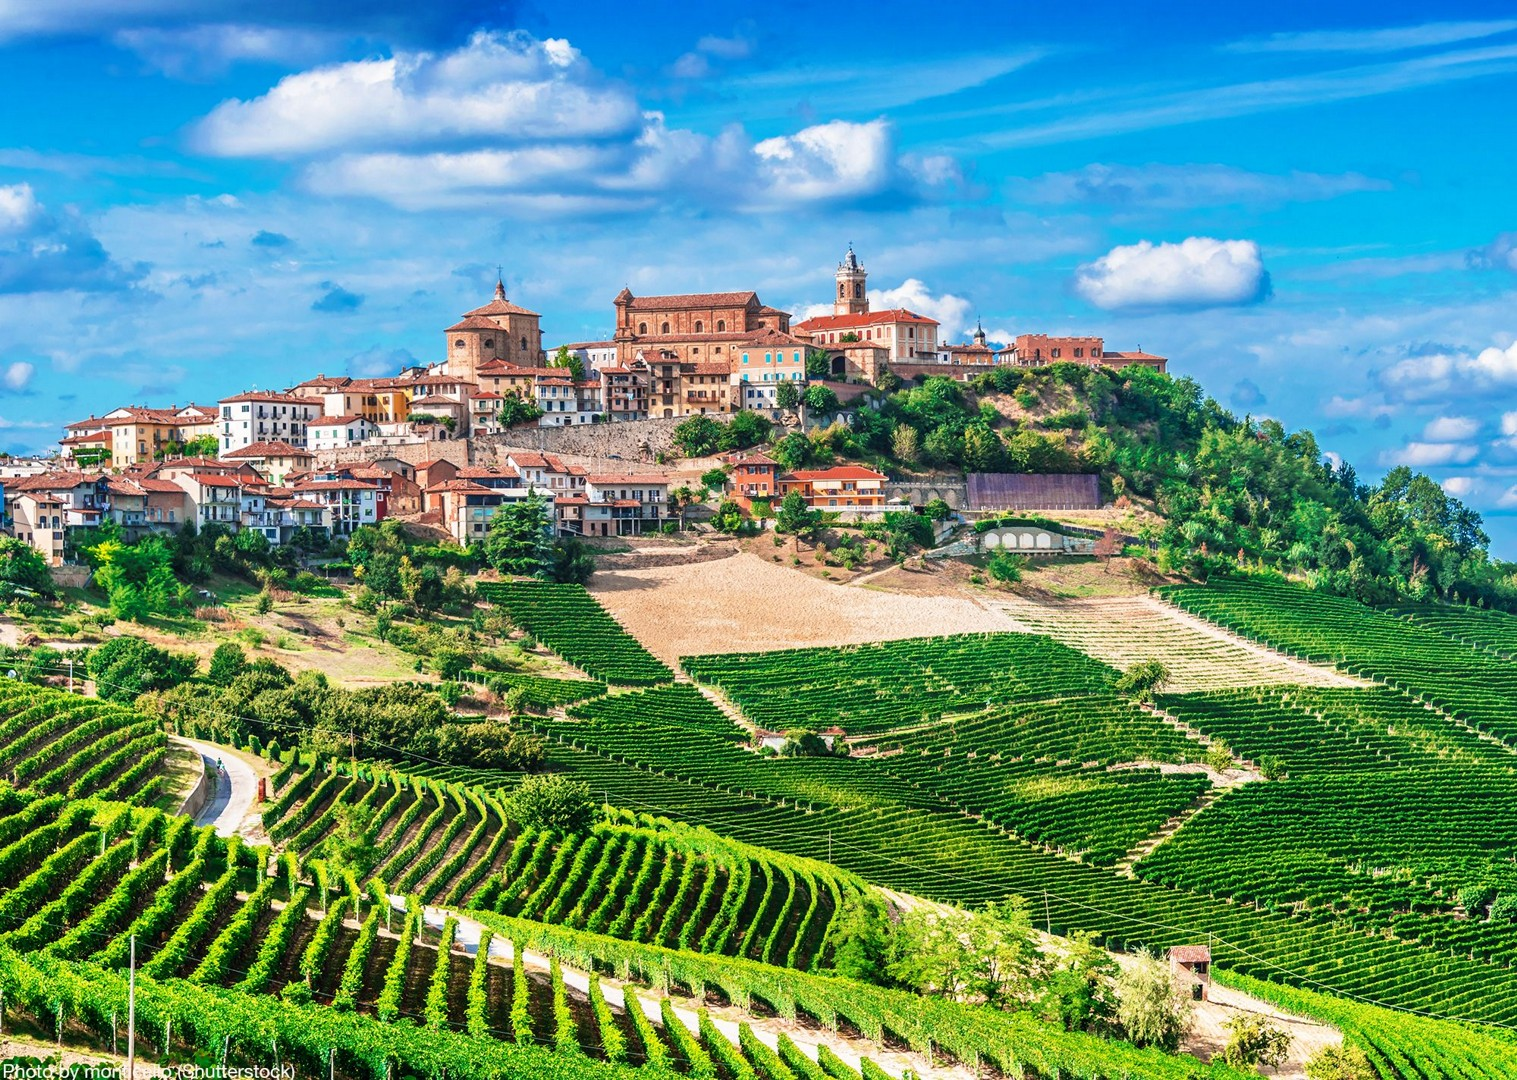 piemonte-italy-self-guided-cycling-holiday-explore-on-bikes-beautiful-towns.jpg - Italy - Piemonte - Vineyards and Views - Self-Guided Leisure Cycling Holiday - Italia Leisure and Family Cycling